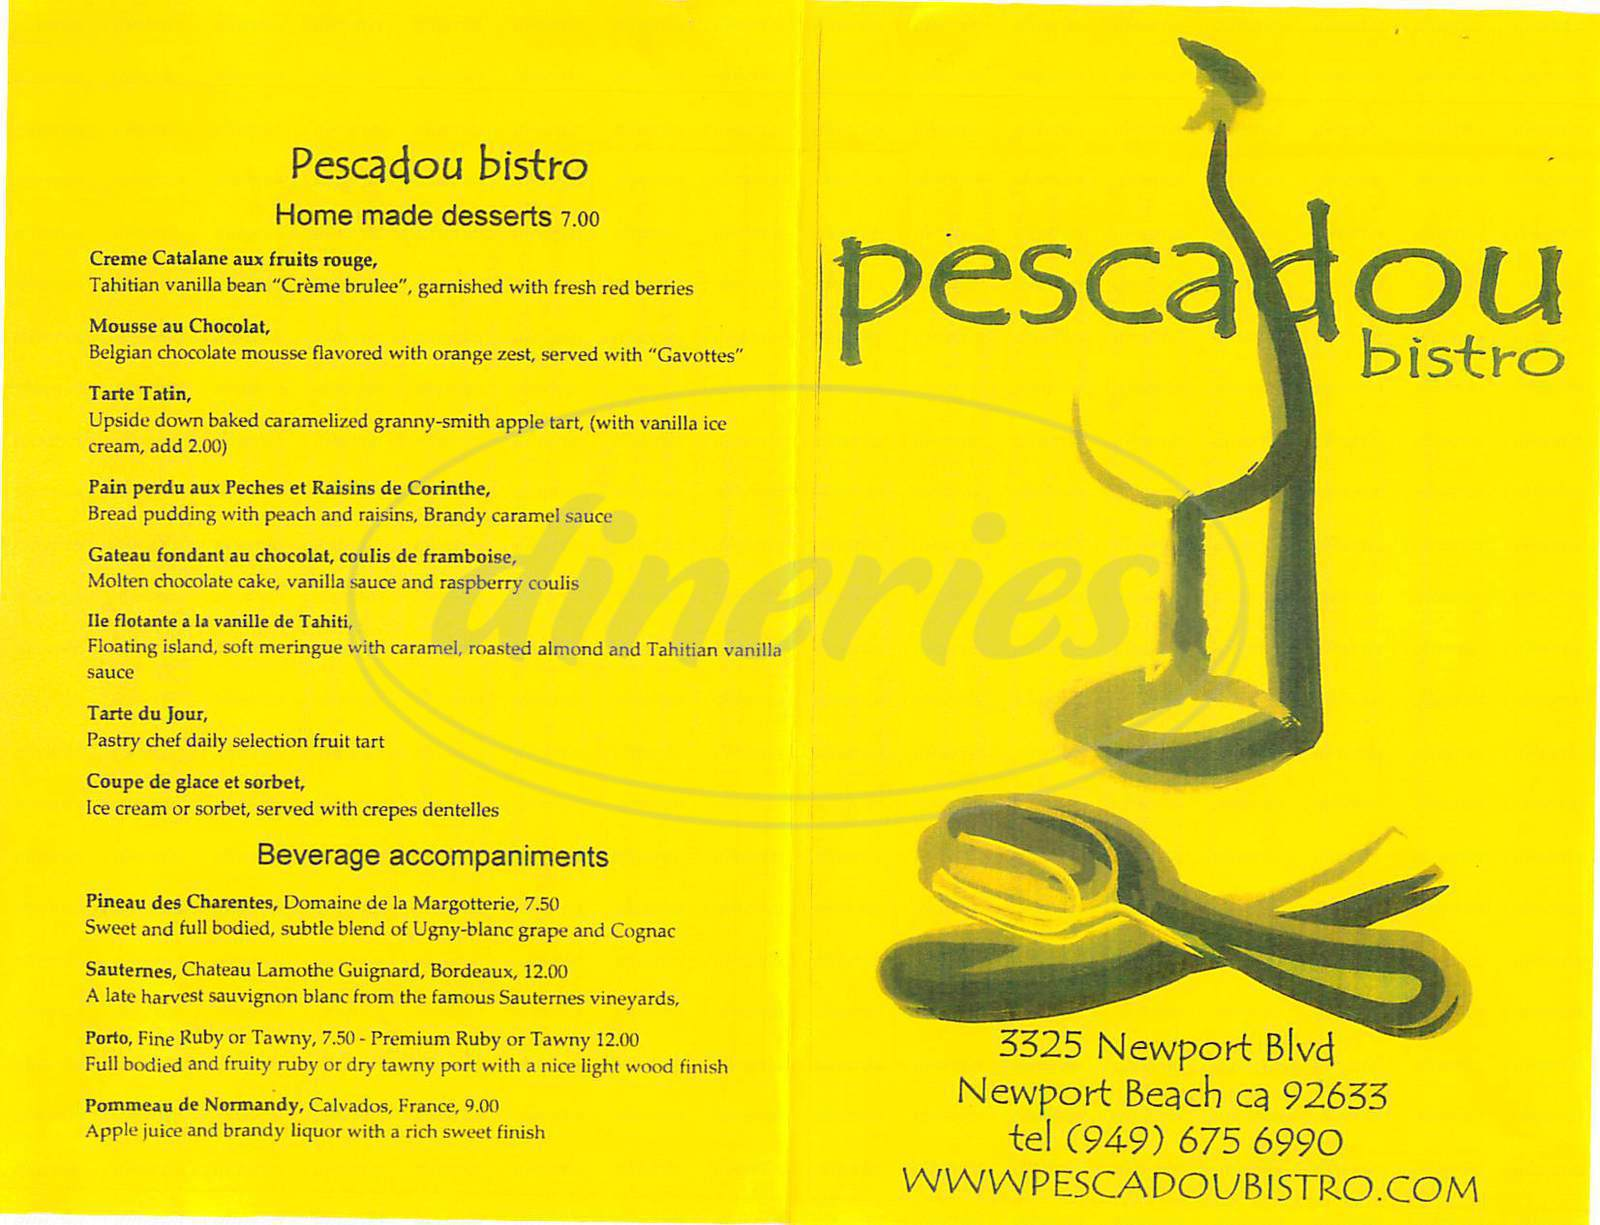 menu for Pescadou Bistro